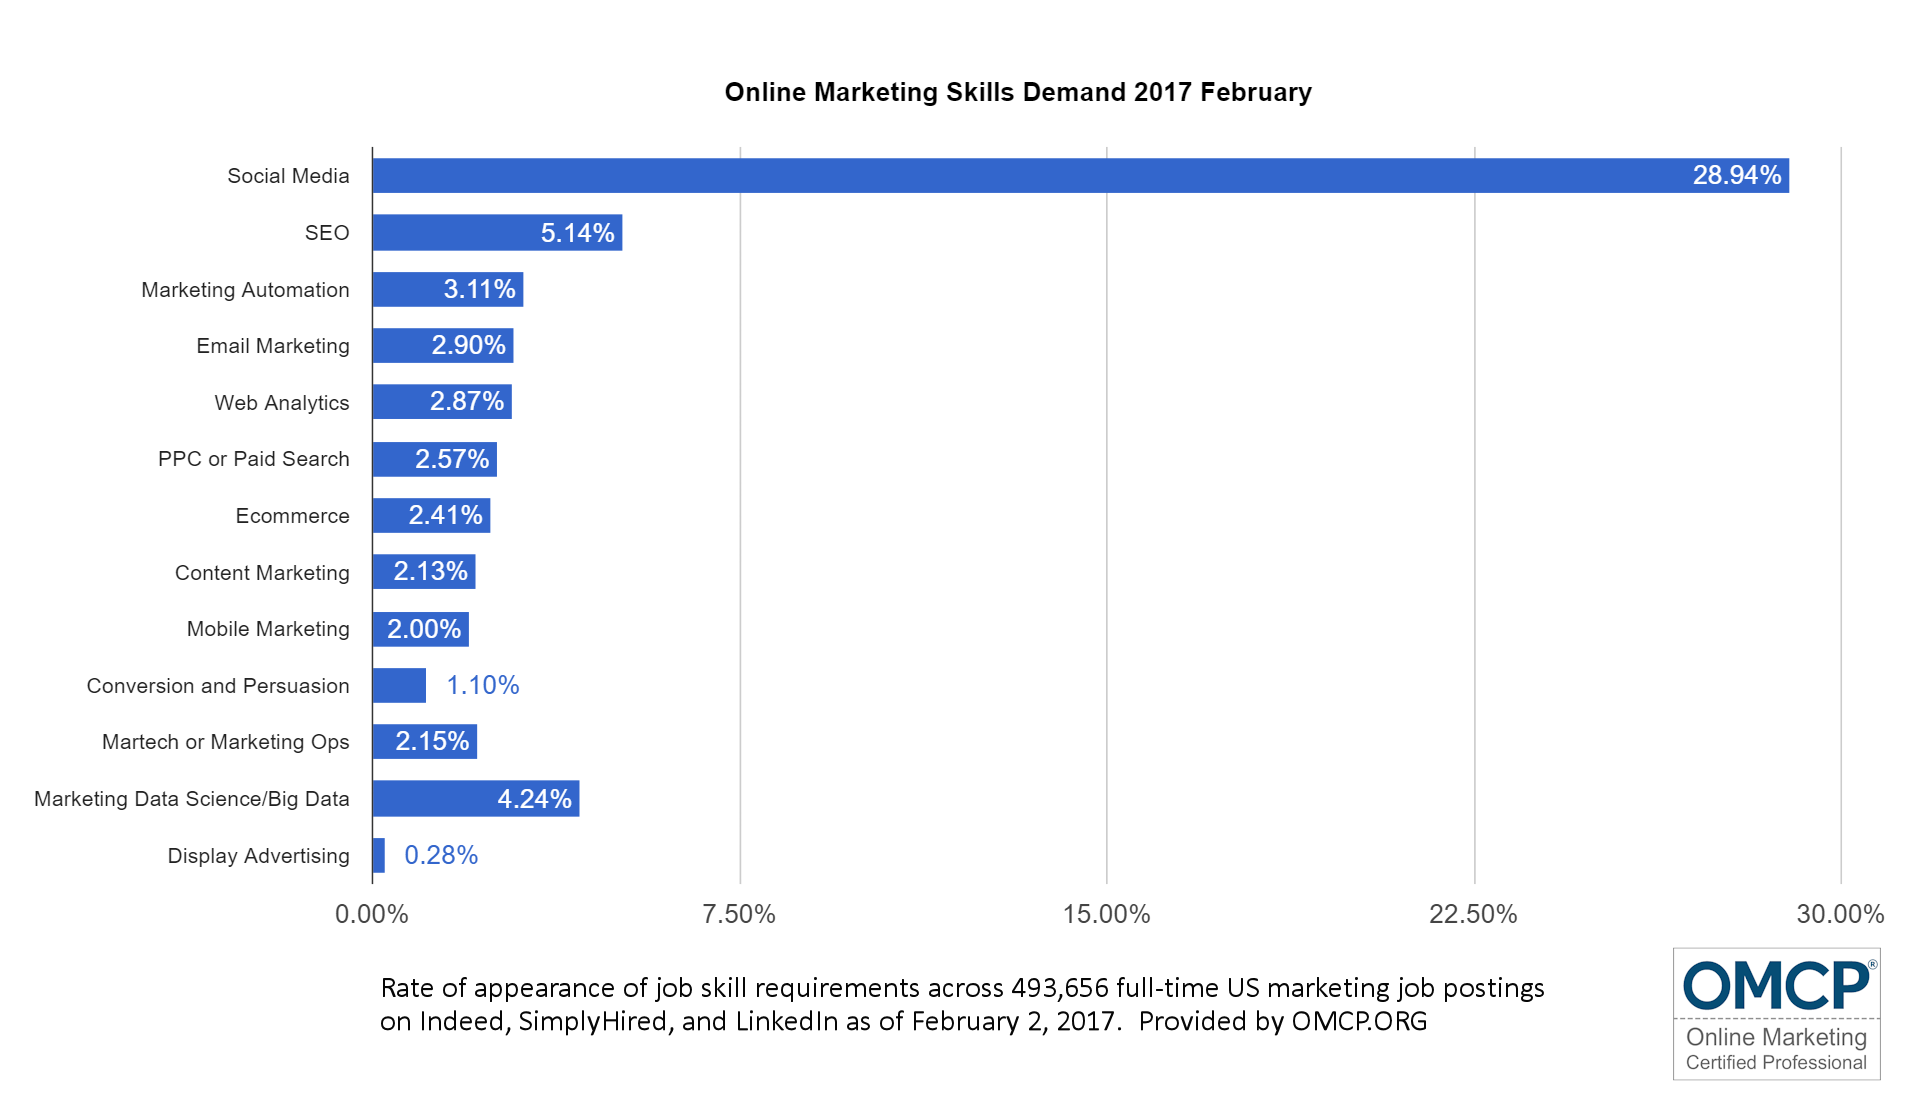 Online Marketing Skills Demand 2017